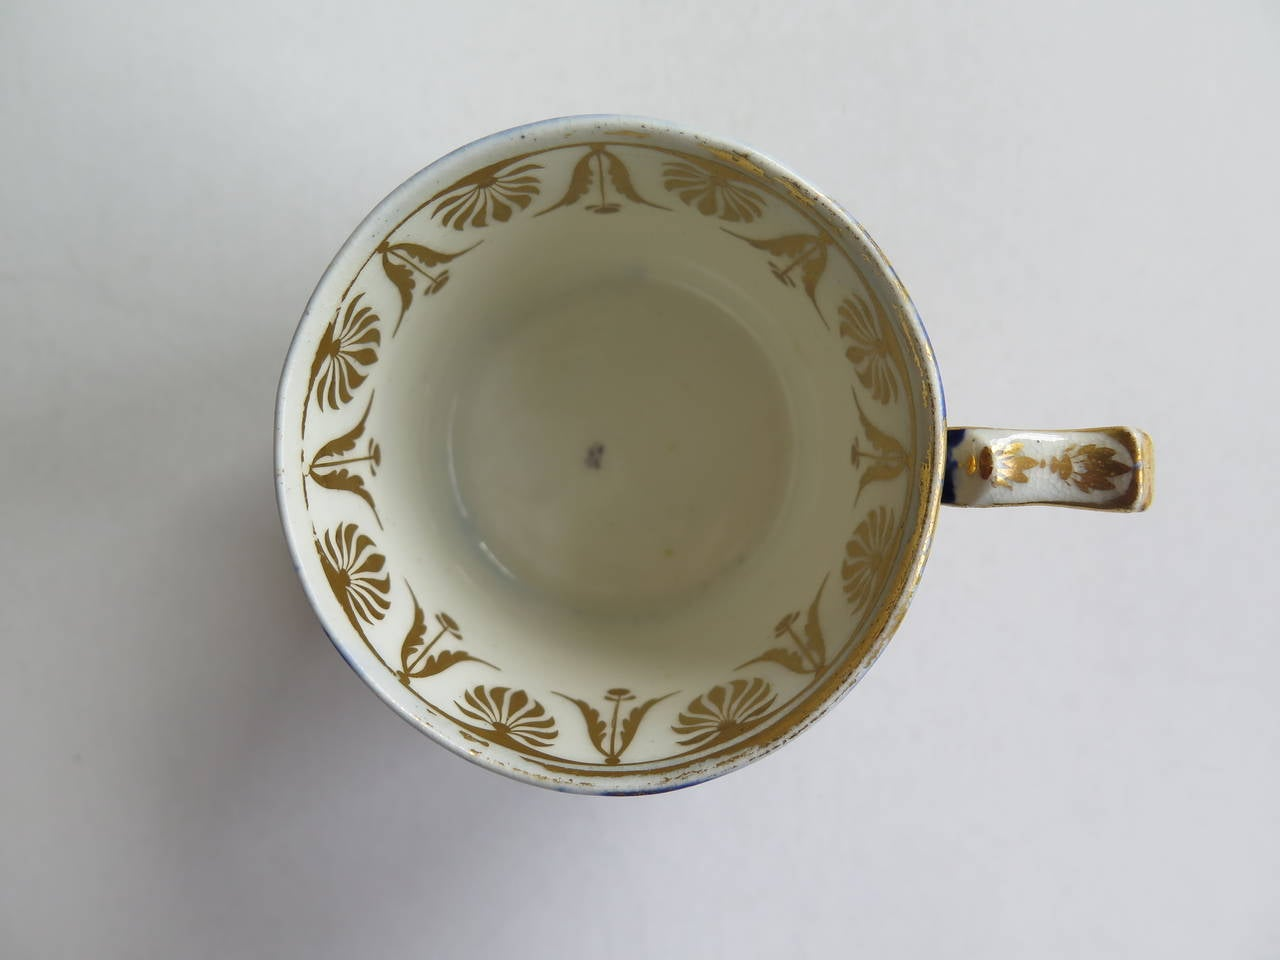 George 111rd Derby Coffee Can Hand-Painted Named View Near Edmonton, Ca 1810 For Sale 2